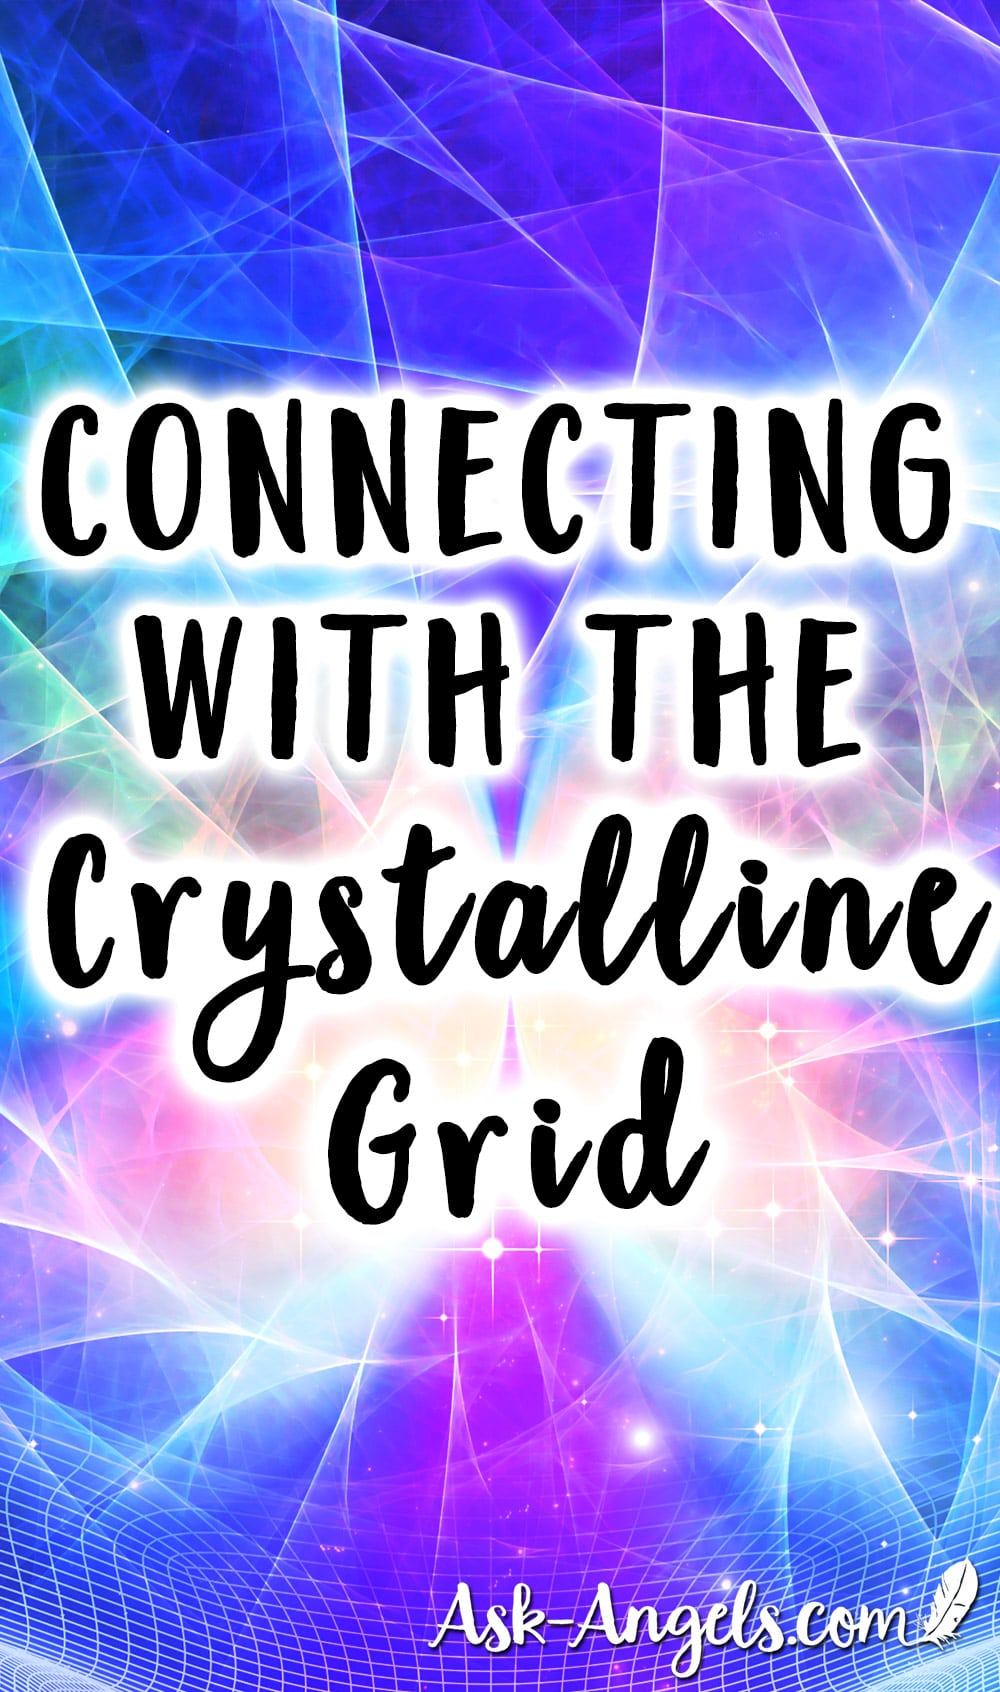 Connecting With The Crystalline Grid